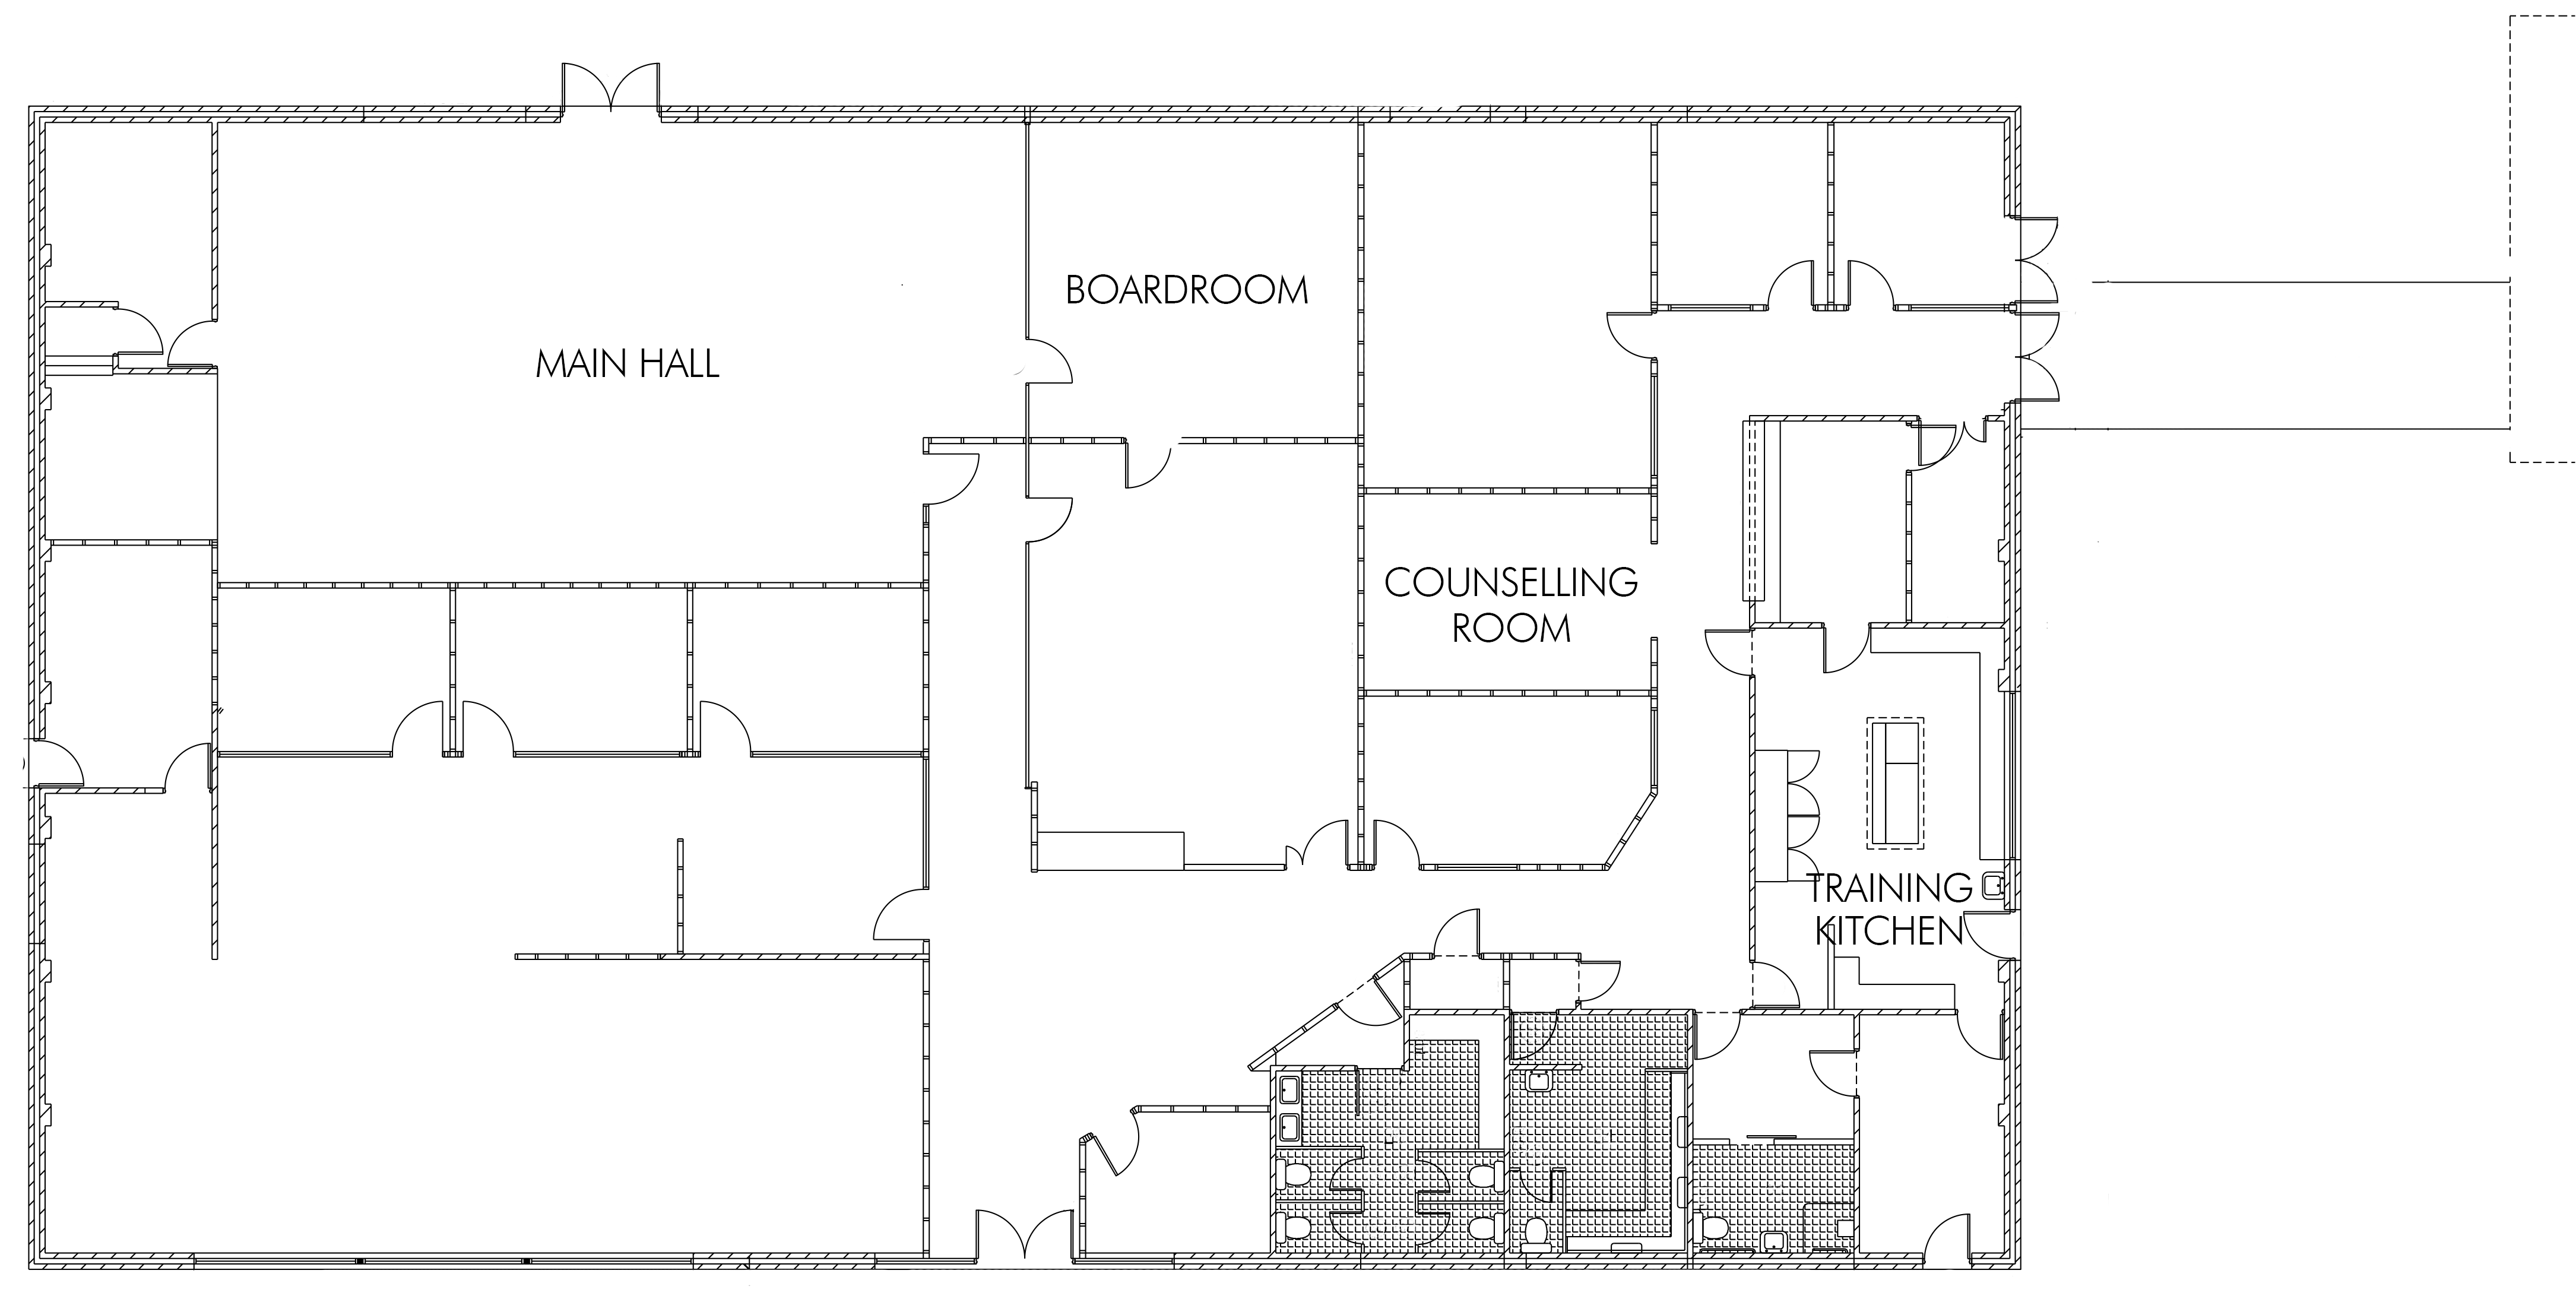 Wardli Youth Centre floor plan